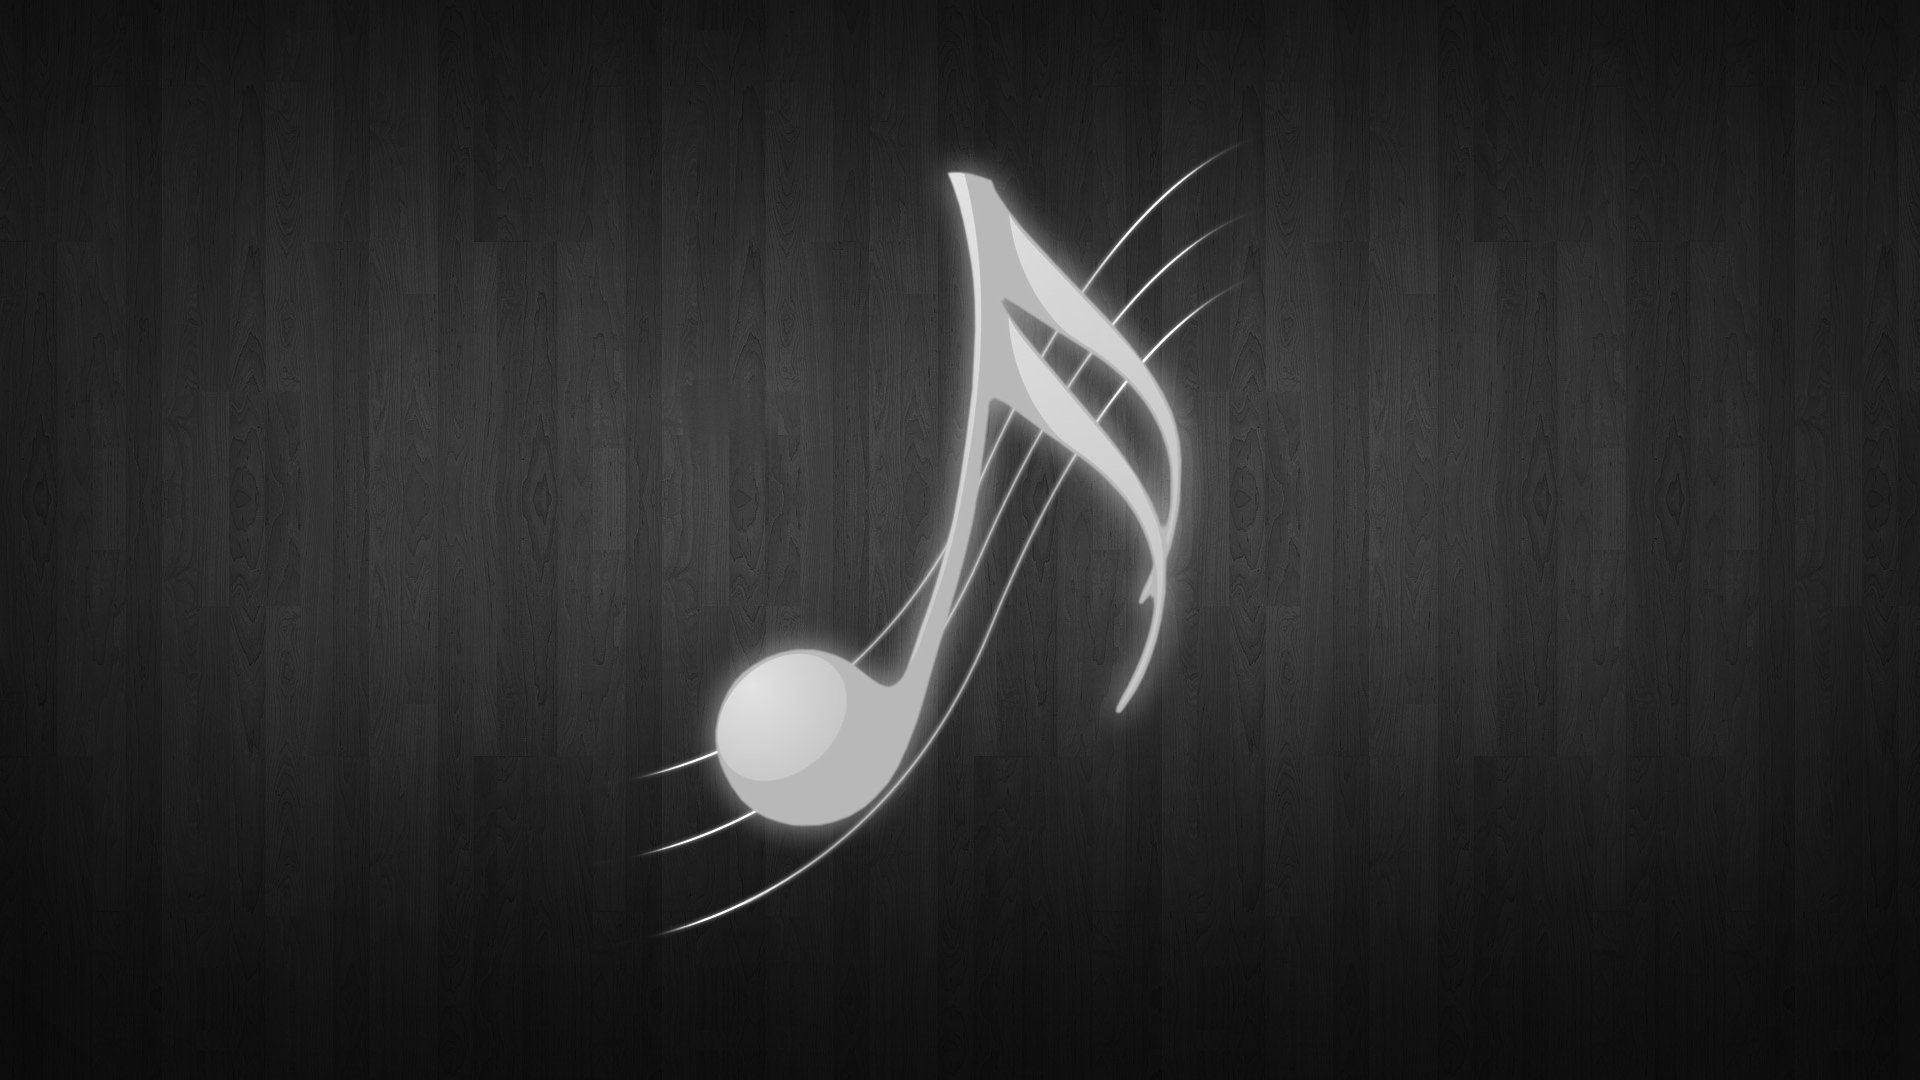 Find Out White Music Notes Wallpaper On Hdpicorner